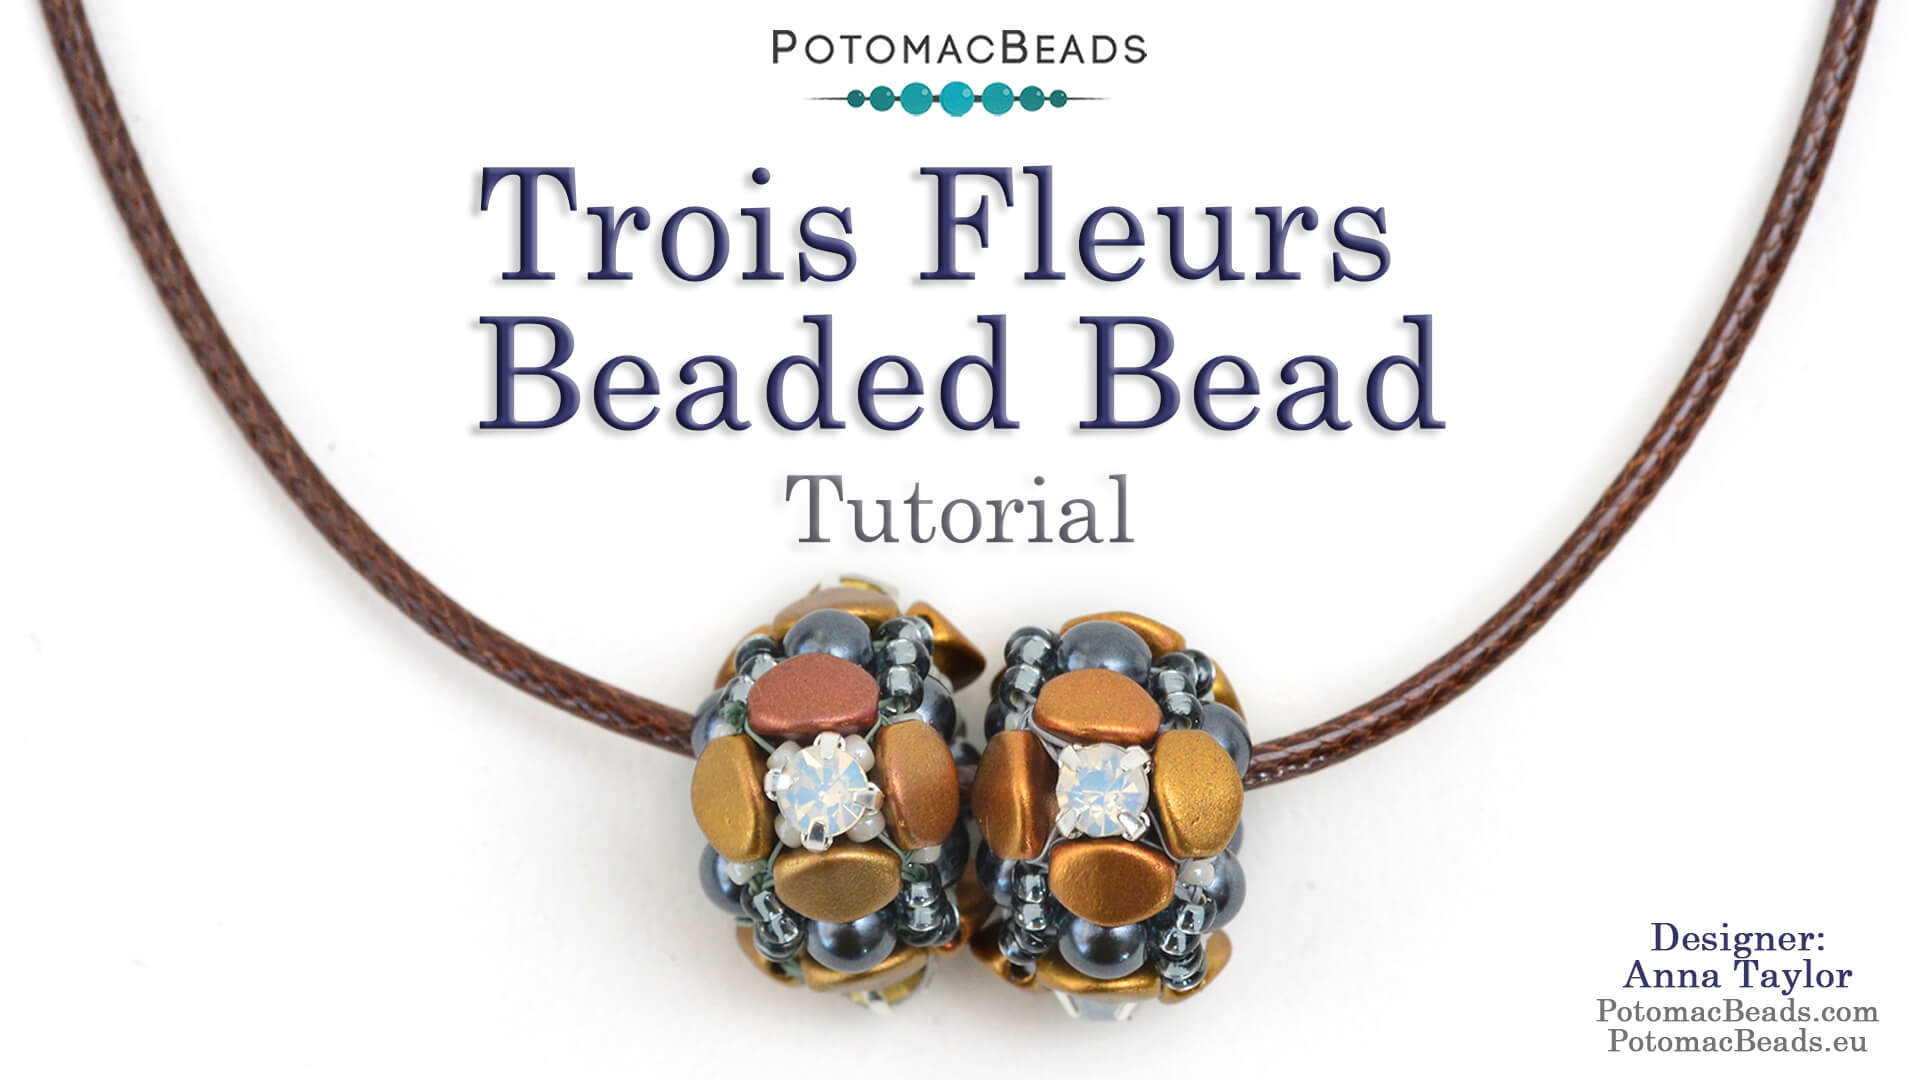 How to Bead Jewelry / Videos Sorted by Beads / Pearl Videos (Czech, Freshwater, Potomac Pearls) / Trois Fleurs Beaded Bead Tutorial